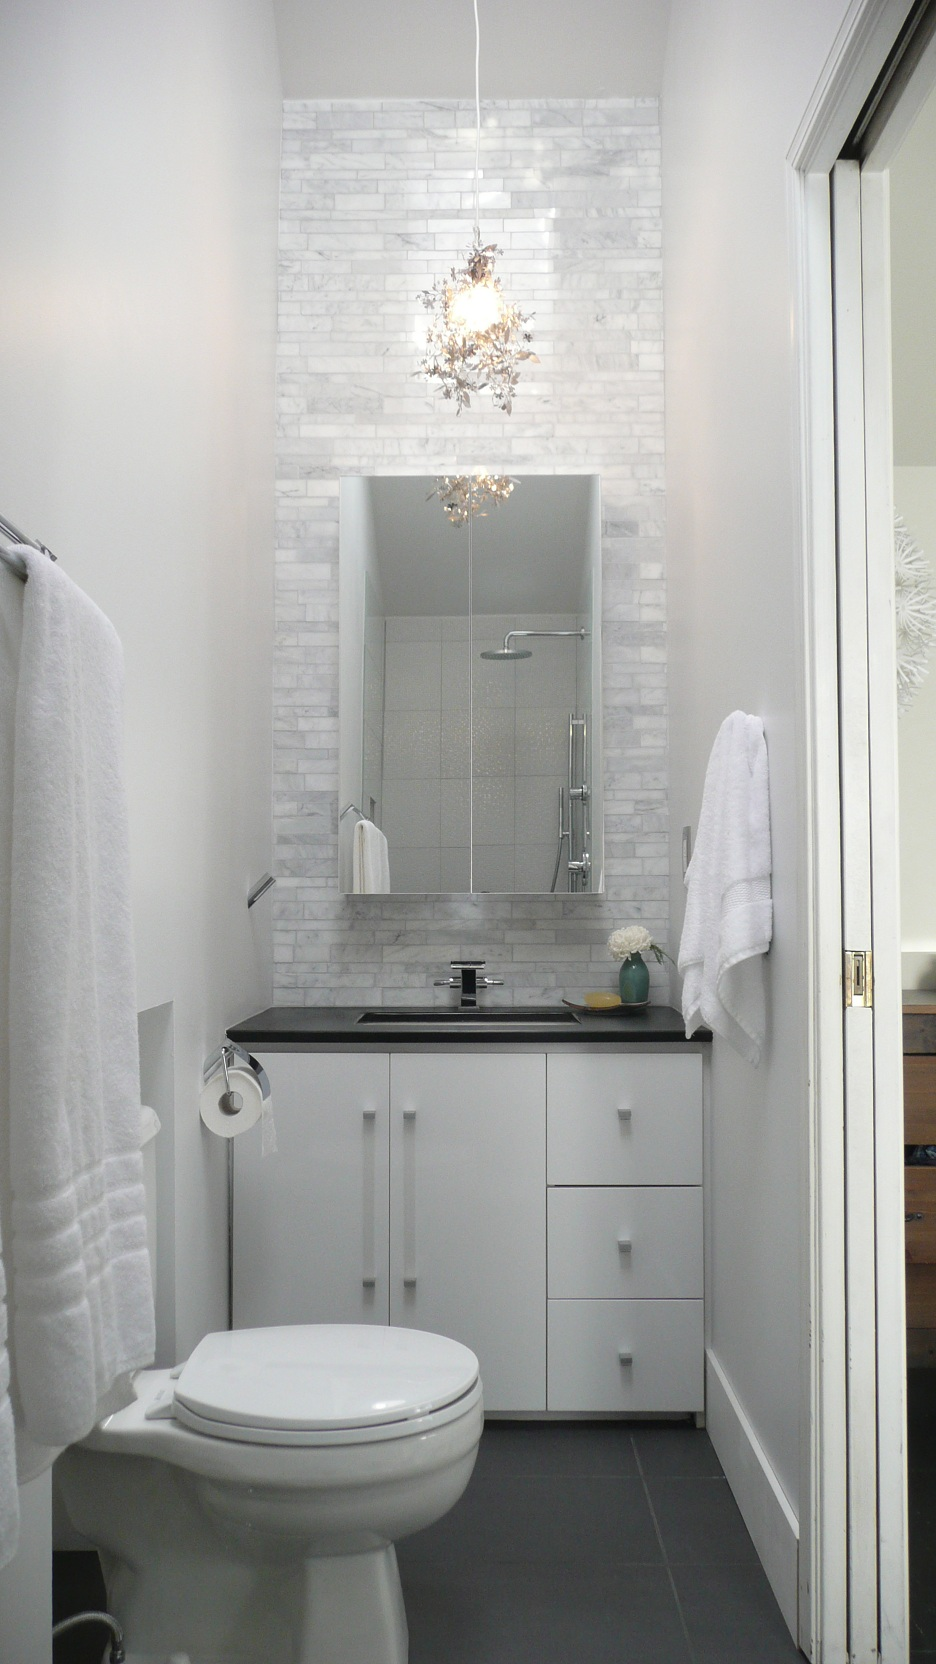 Bathroom Designs Inspirations from Precious Nest  Design Shuffle  read  full article